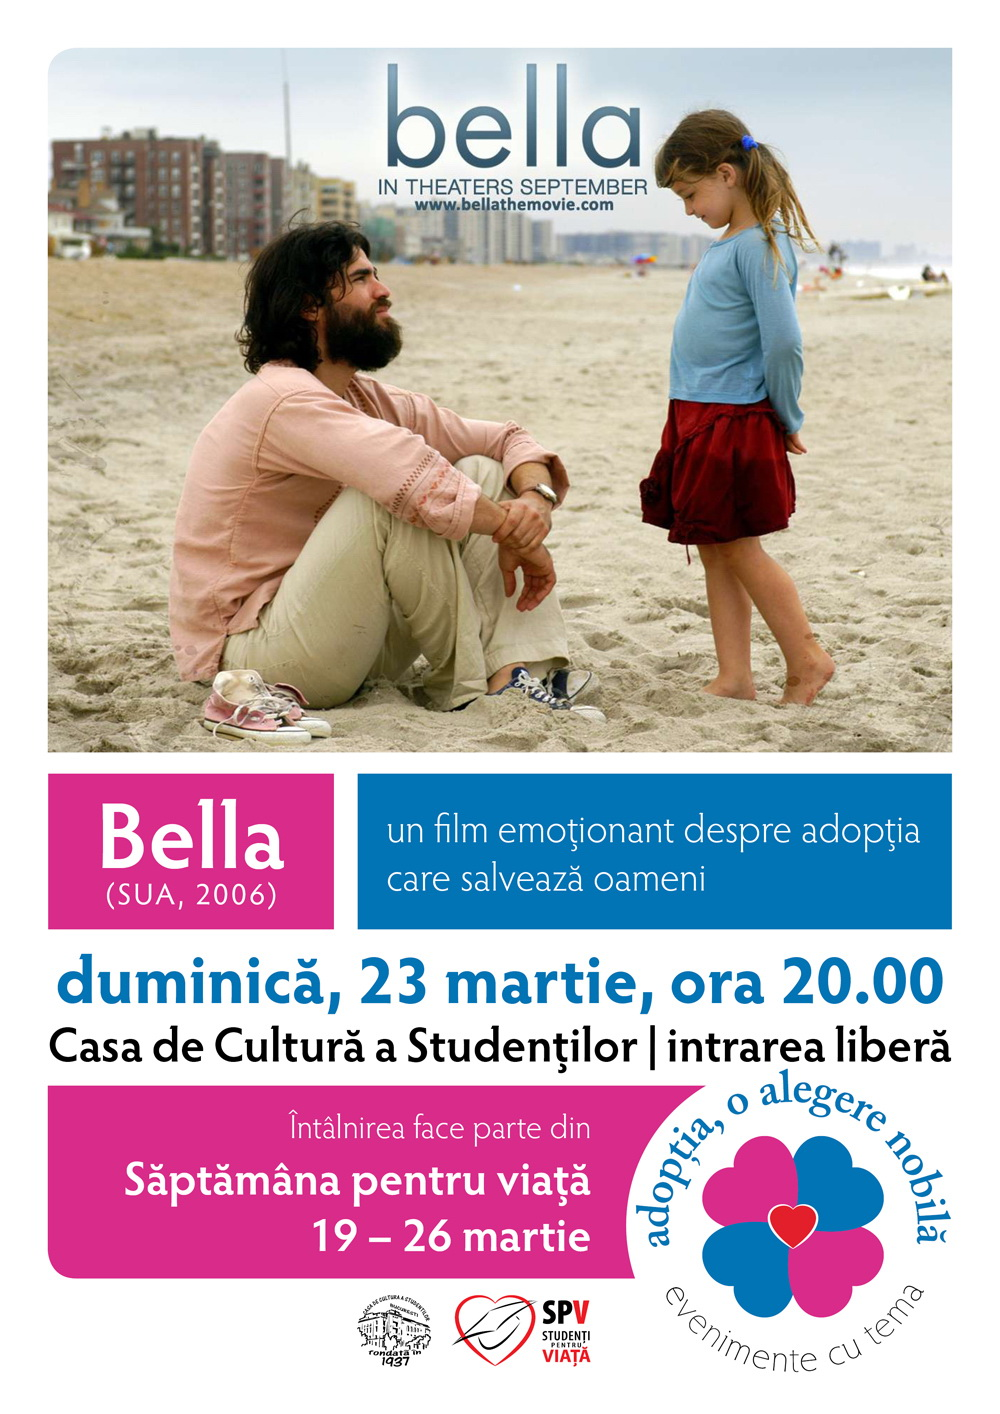 Photo of Romania's Pro-Life Week 2014: Bella, a Movie Celebrating Life